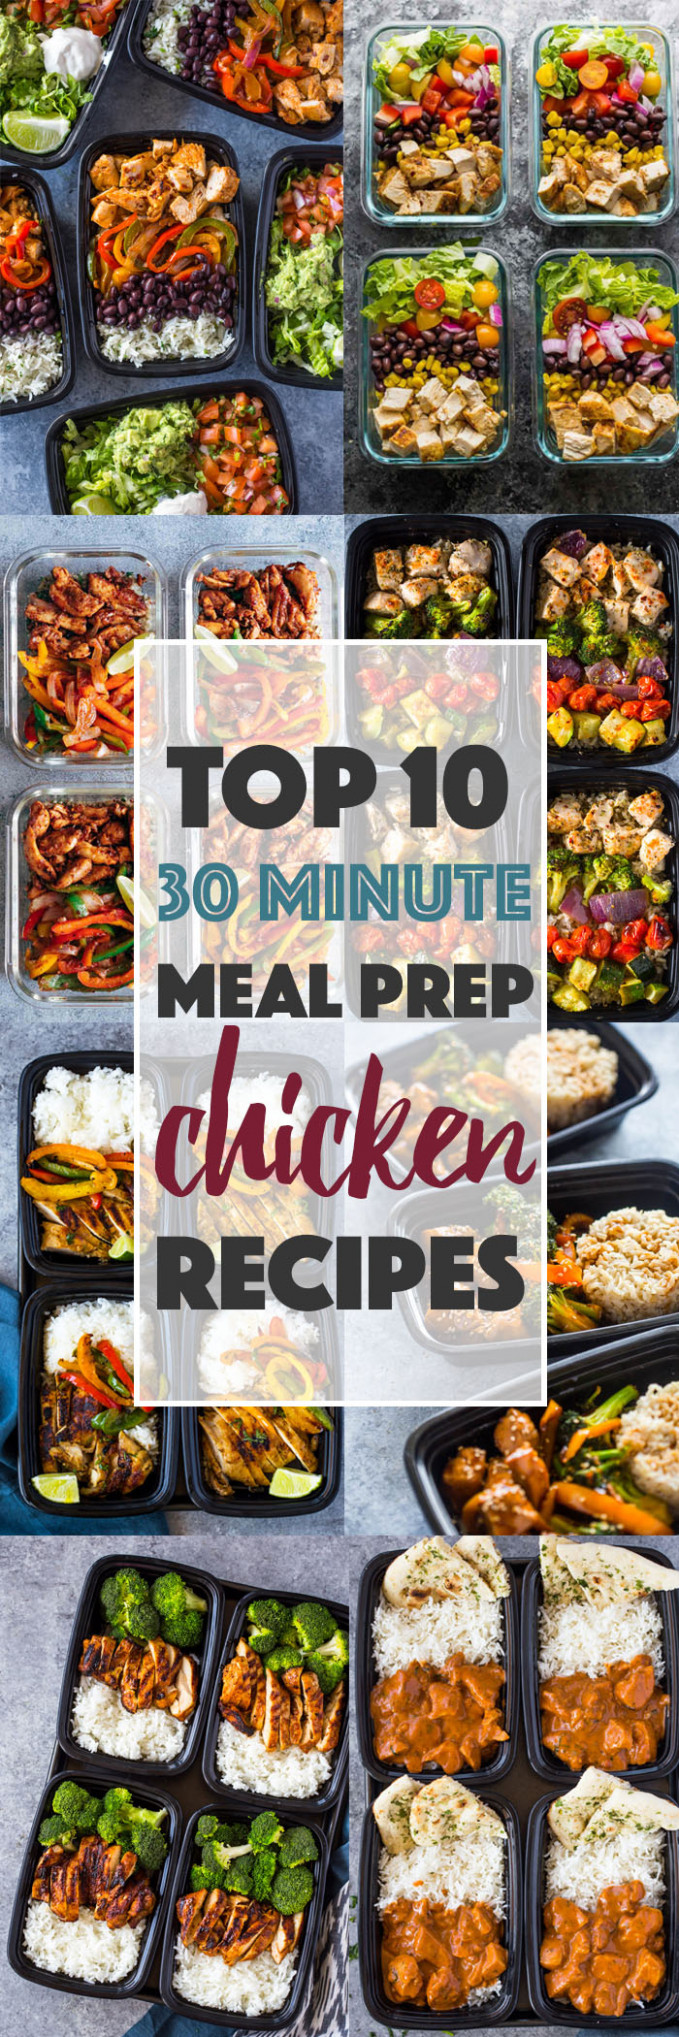 Top 13 (13 Minute) Meal-prep Chicken Recipes | Gimme Delicious - healthy dinner recipes chicken